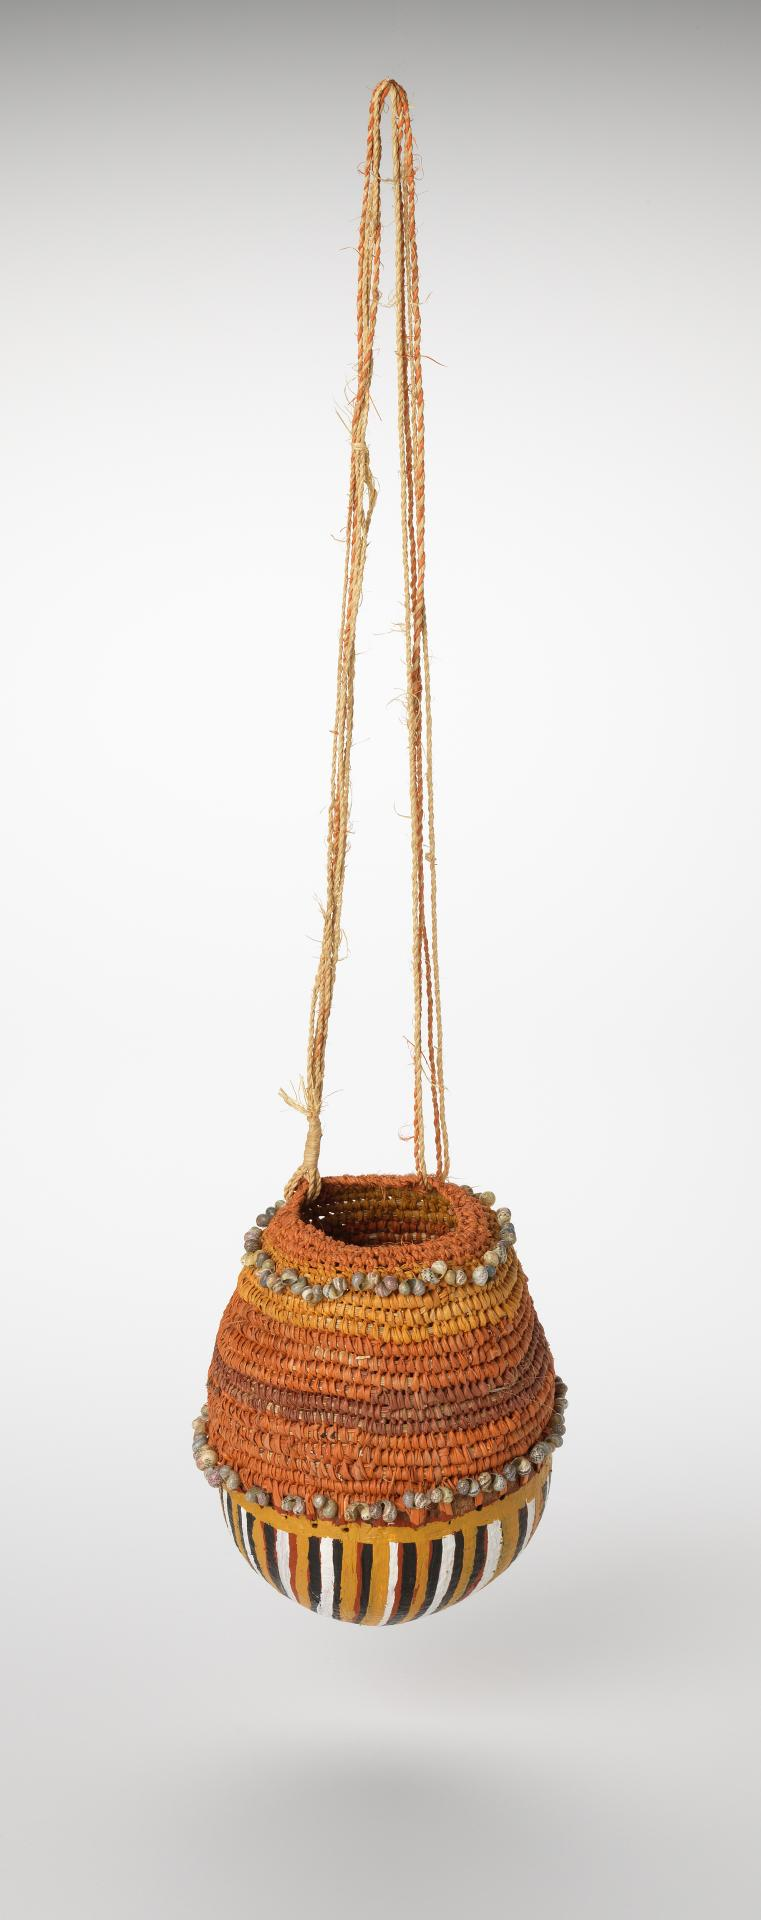 Galuka bathi (Coconut basket)